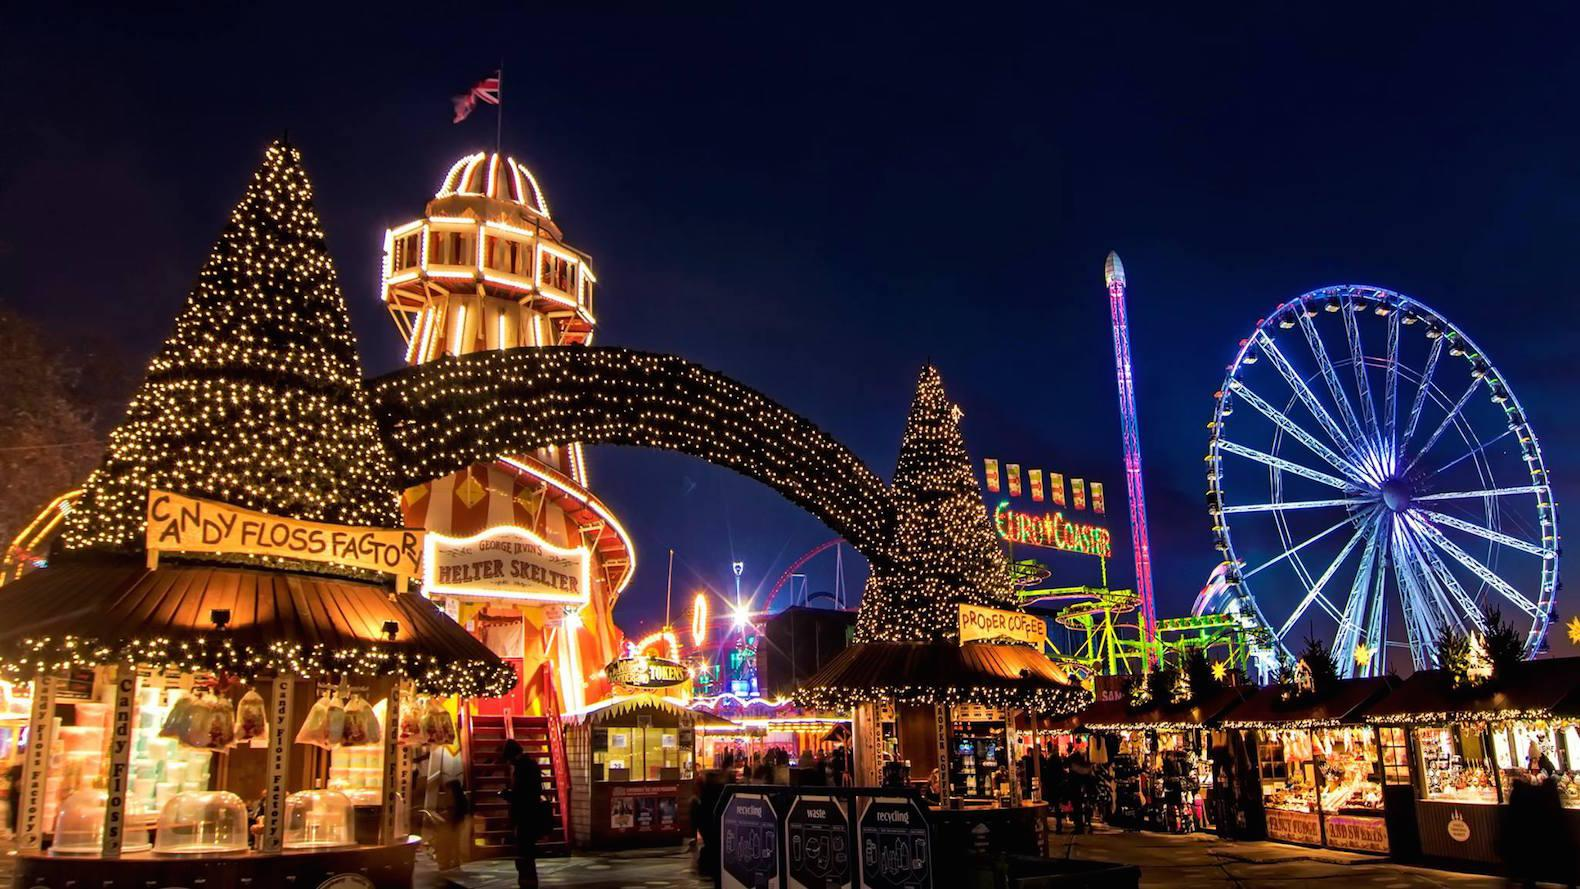 https://www.titanium.lv/wp-content/uploads/2017/11/london-xmas-winterwonderland.jpg